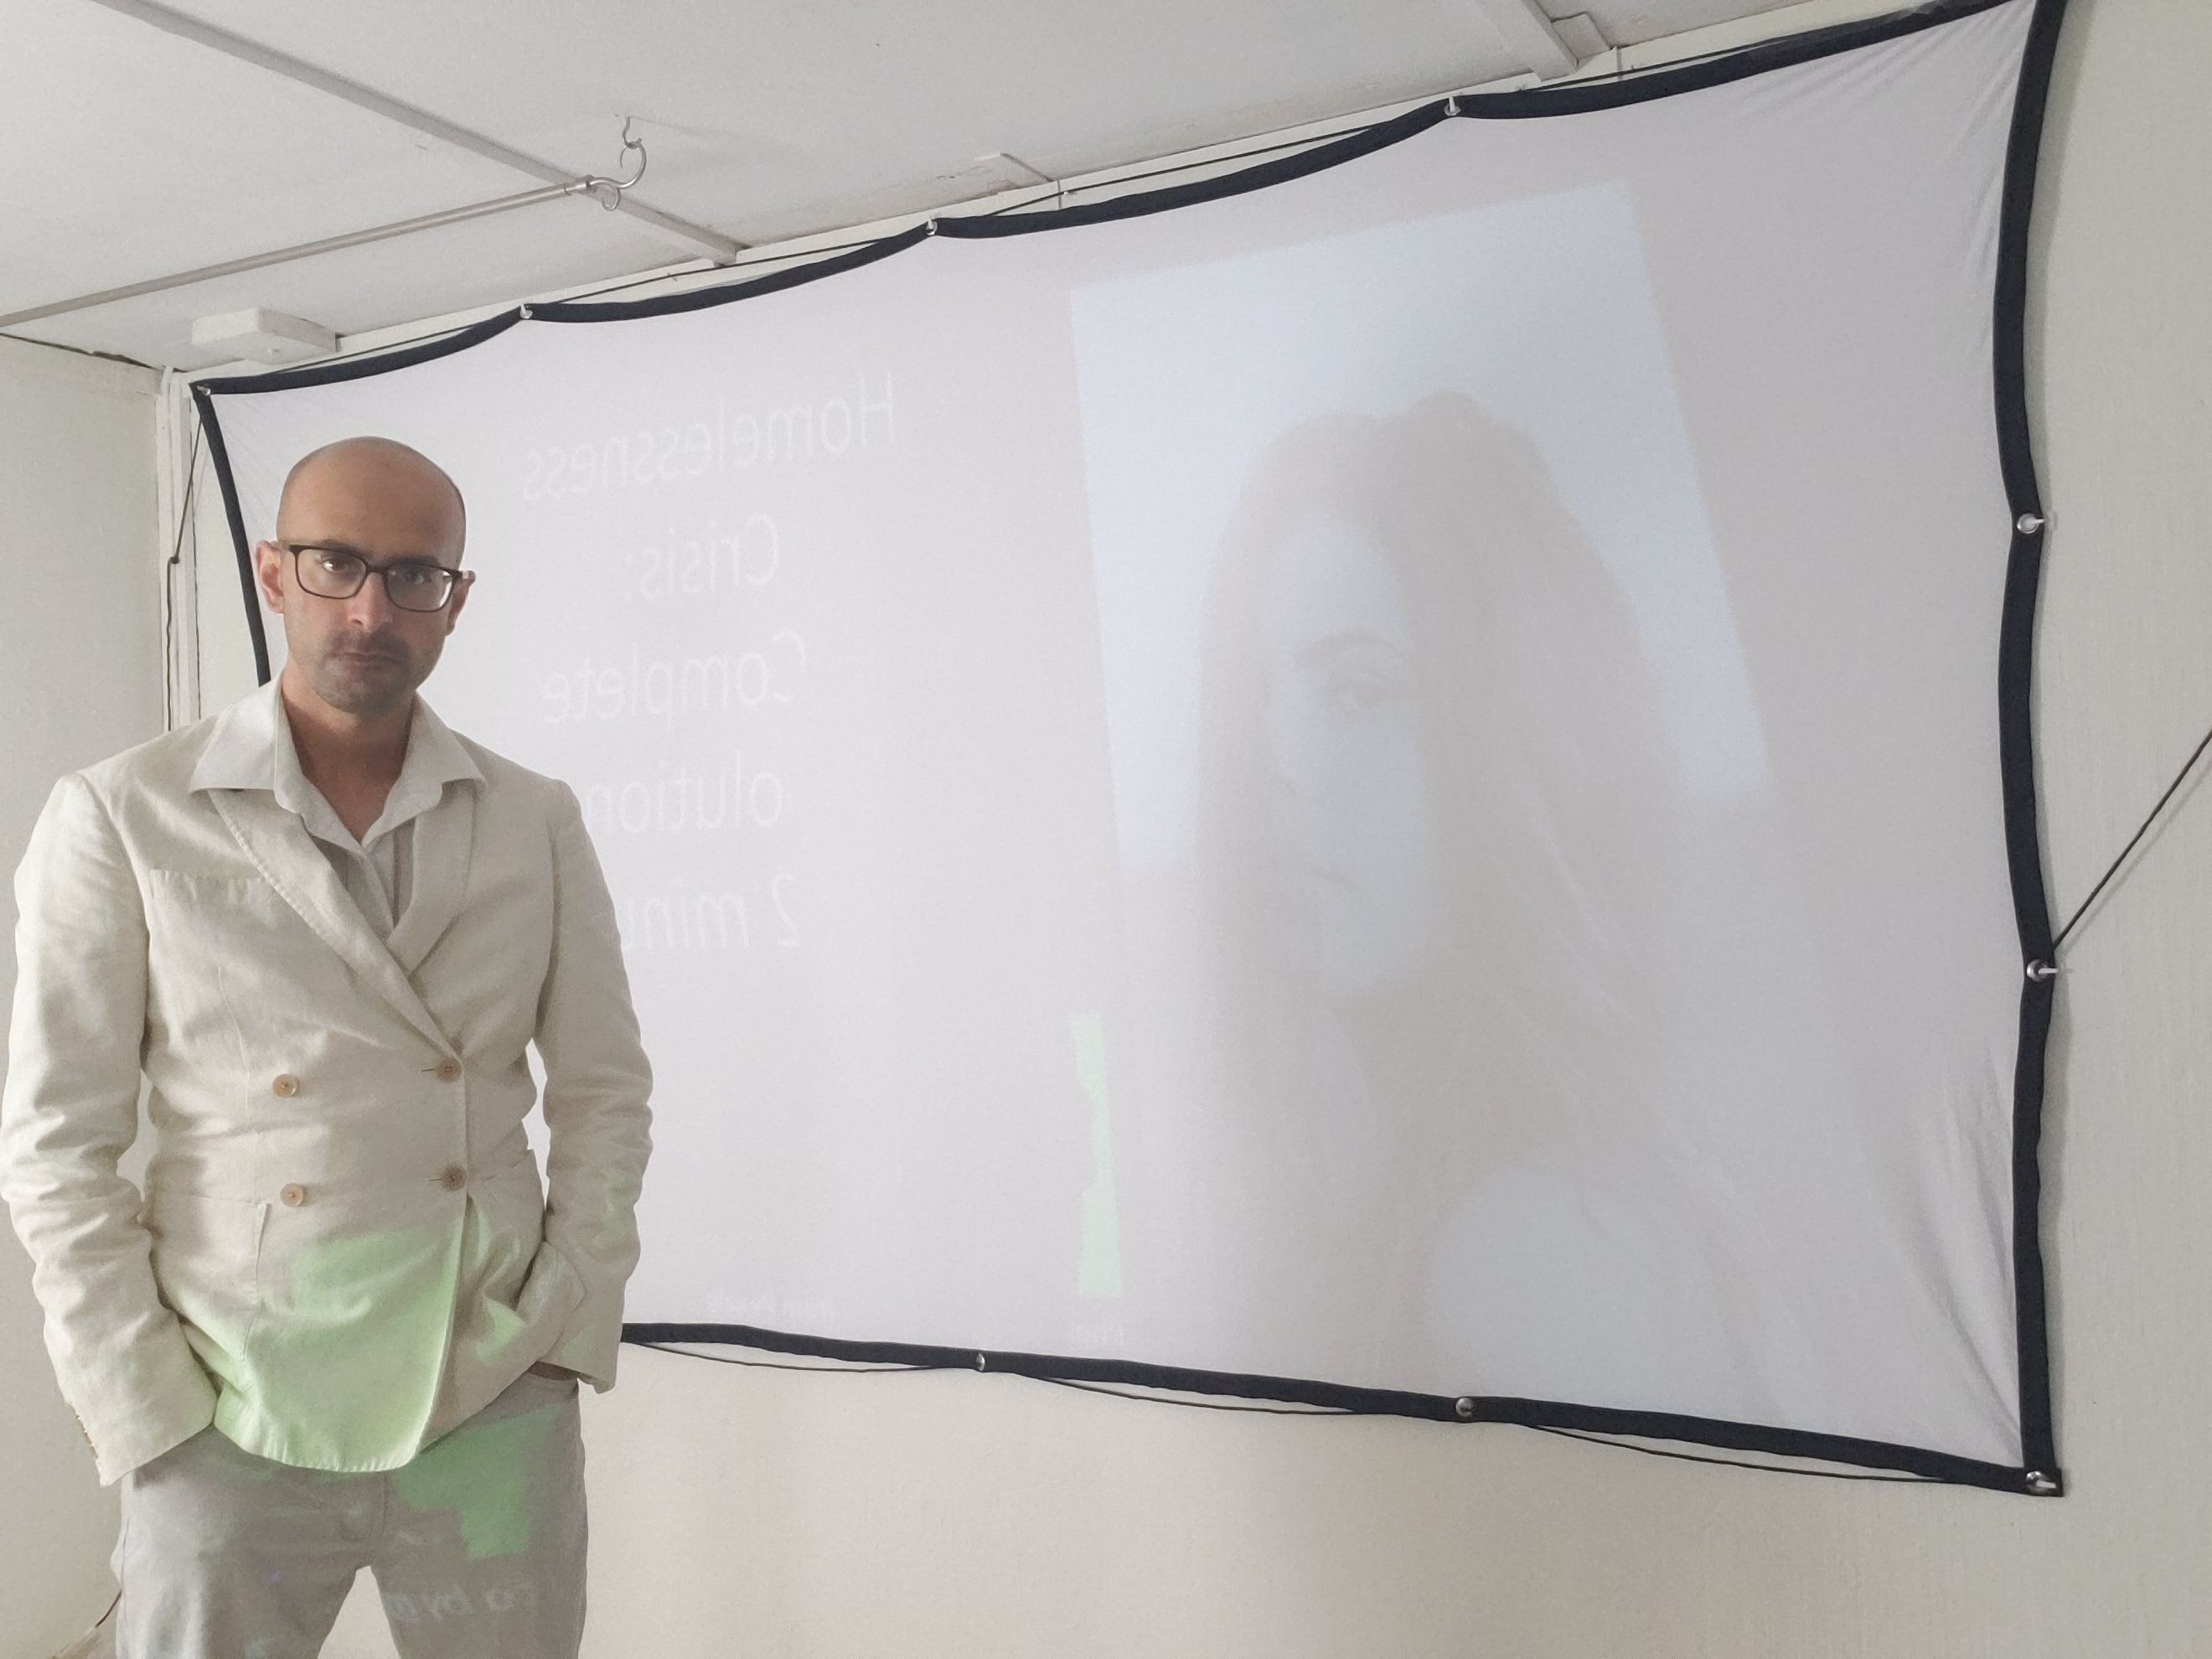 Salman Shuaib standing infront of a projected image